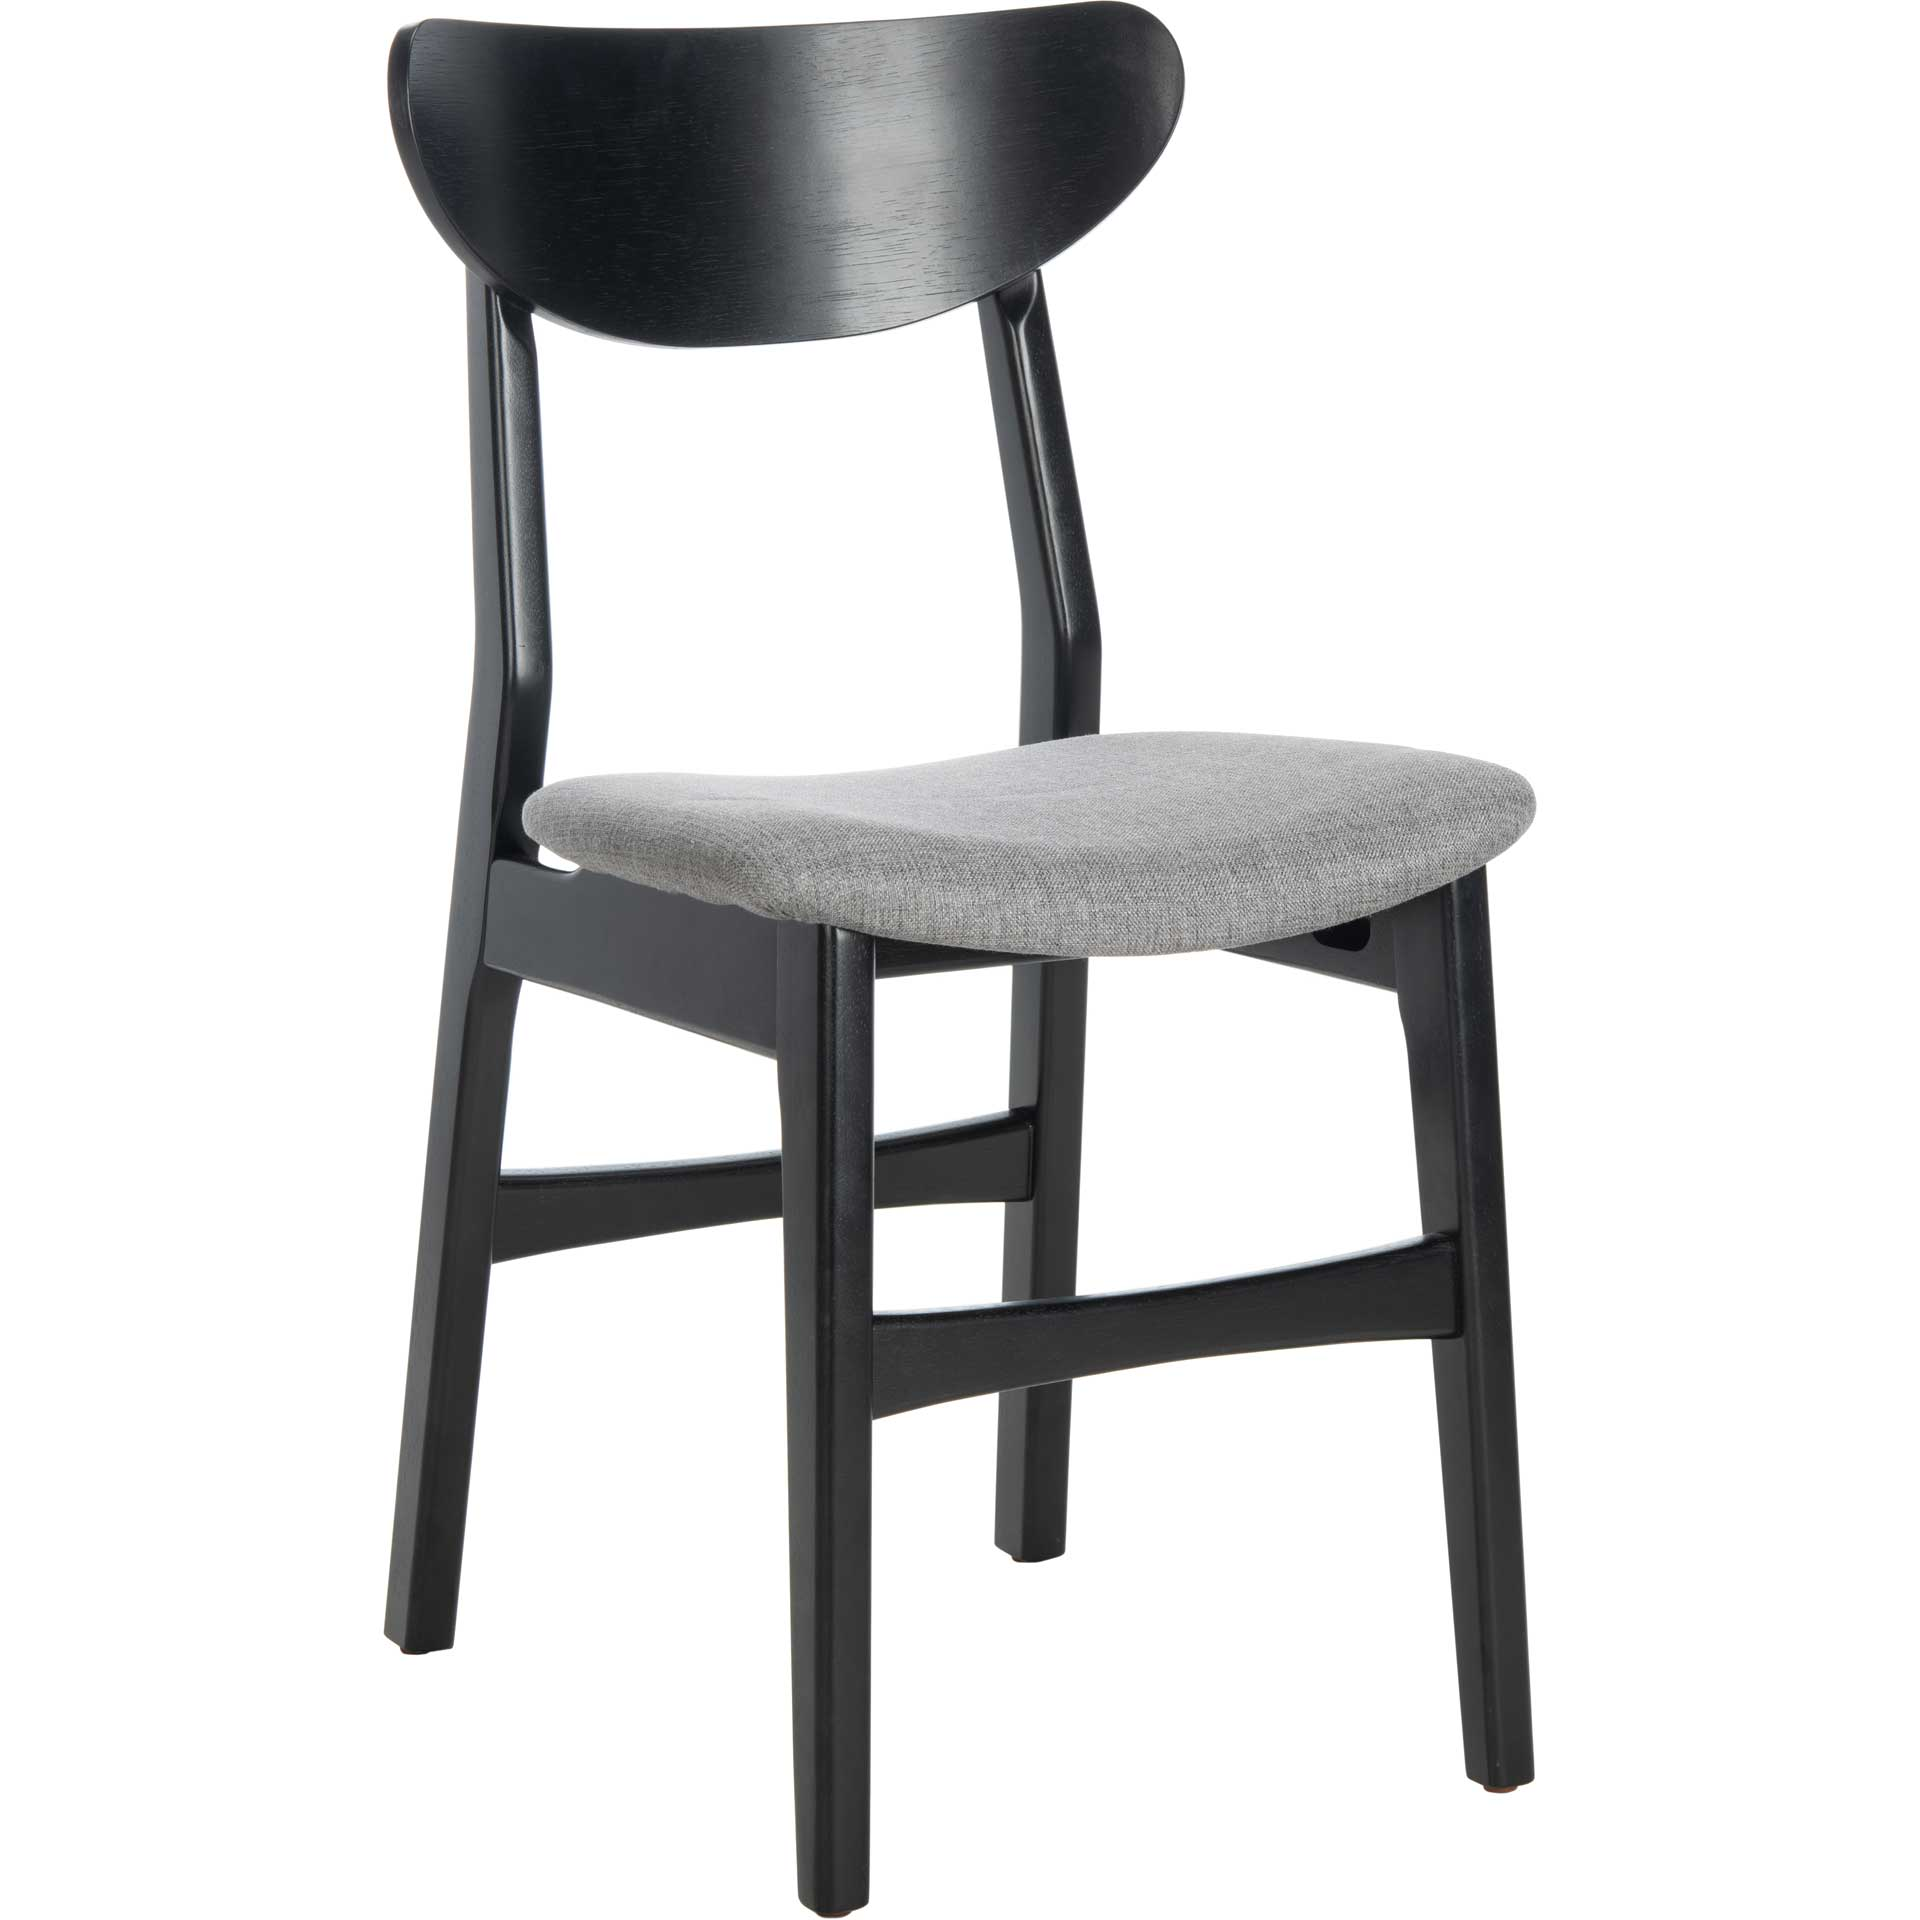 Lucas Retro Dining Chair Black/Gray (Set of 2)